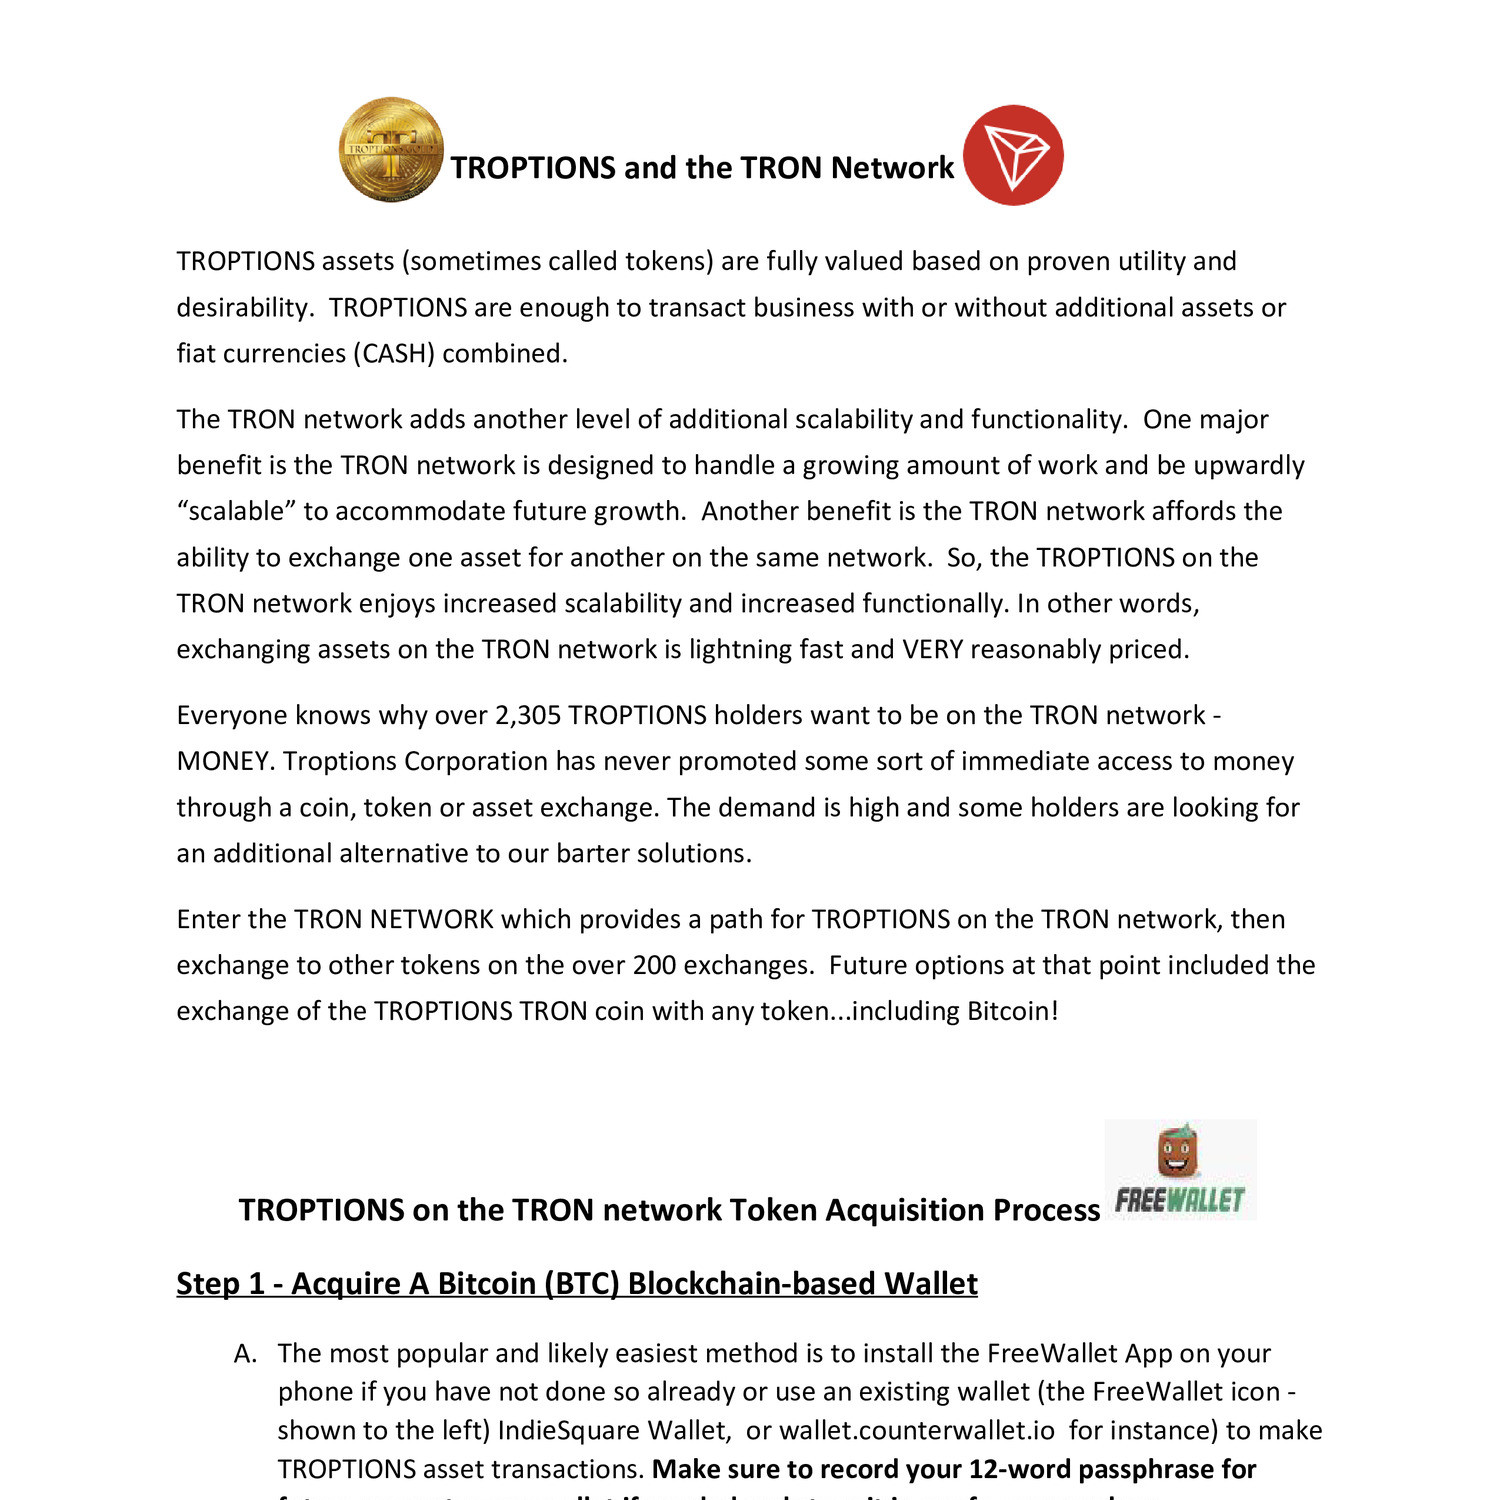 TROPTIONS and the TRON Network pdf | DocDroid